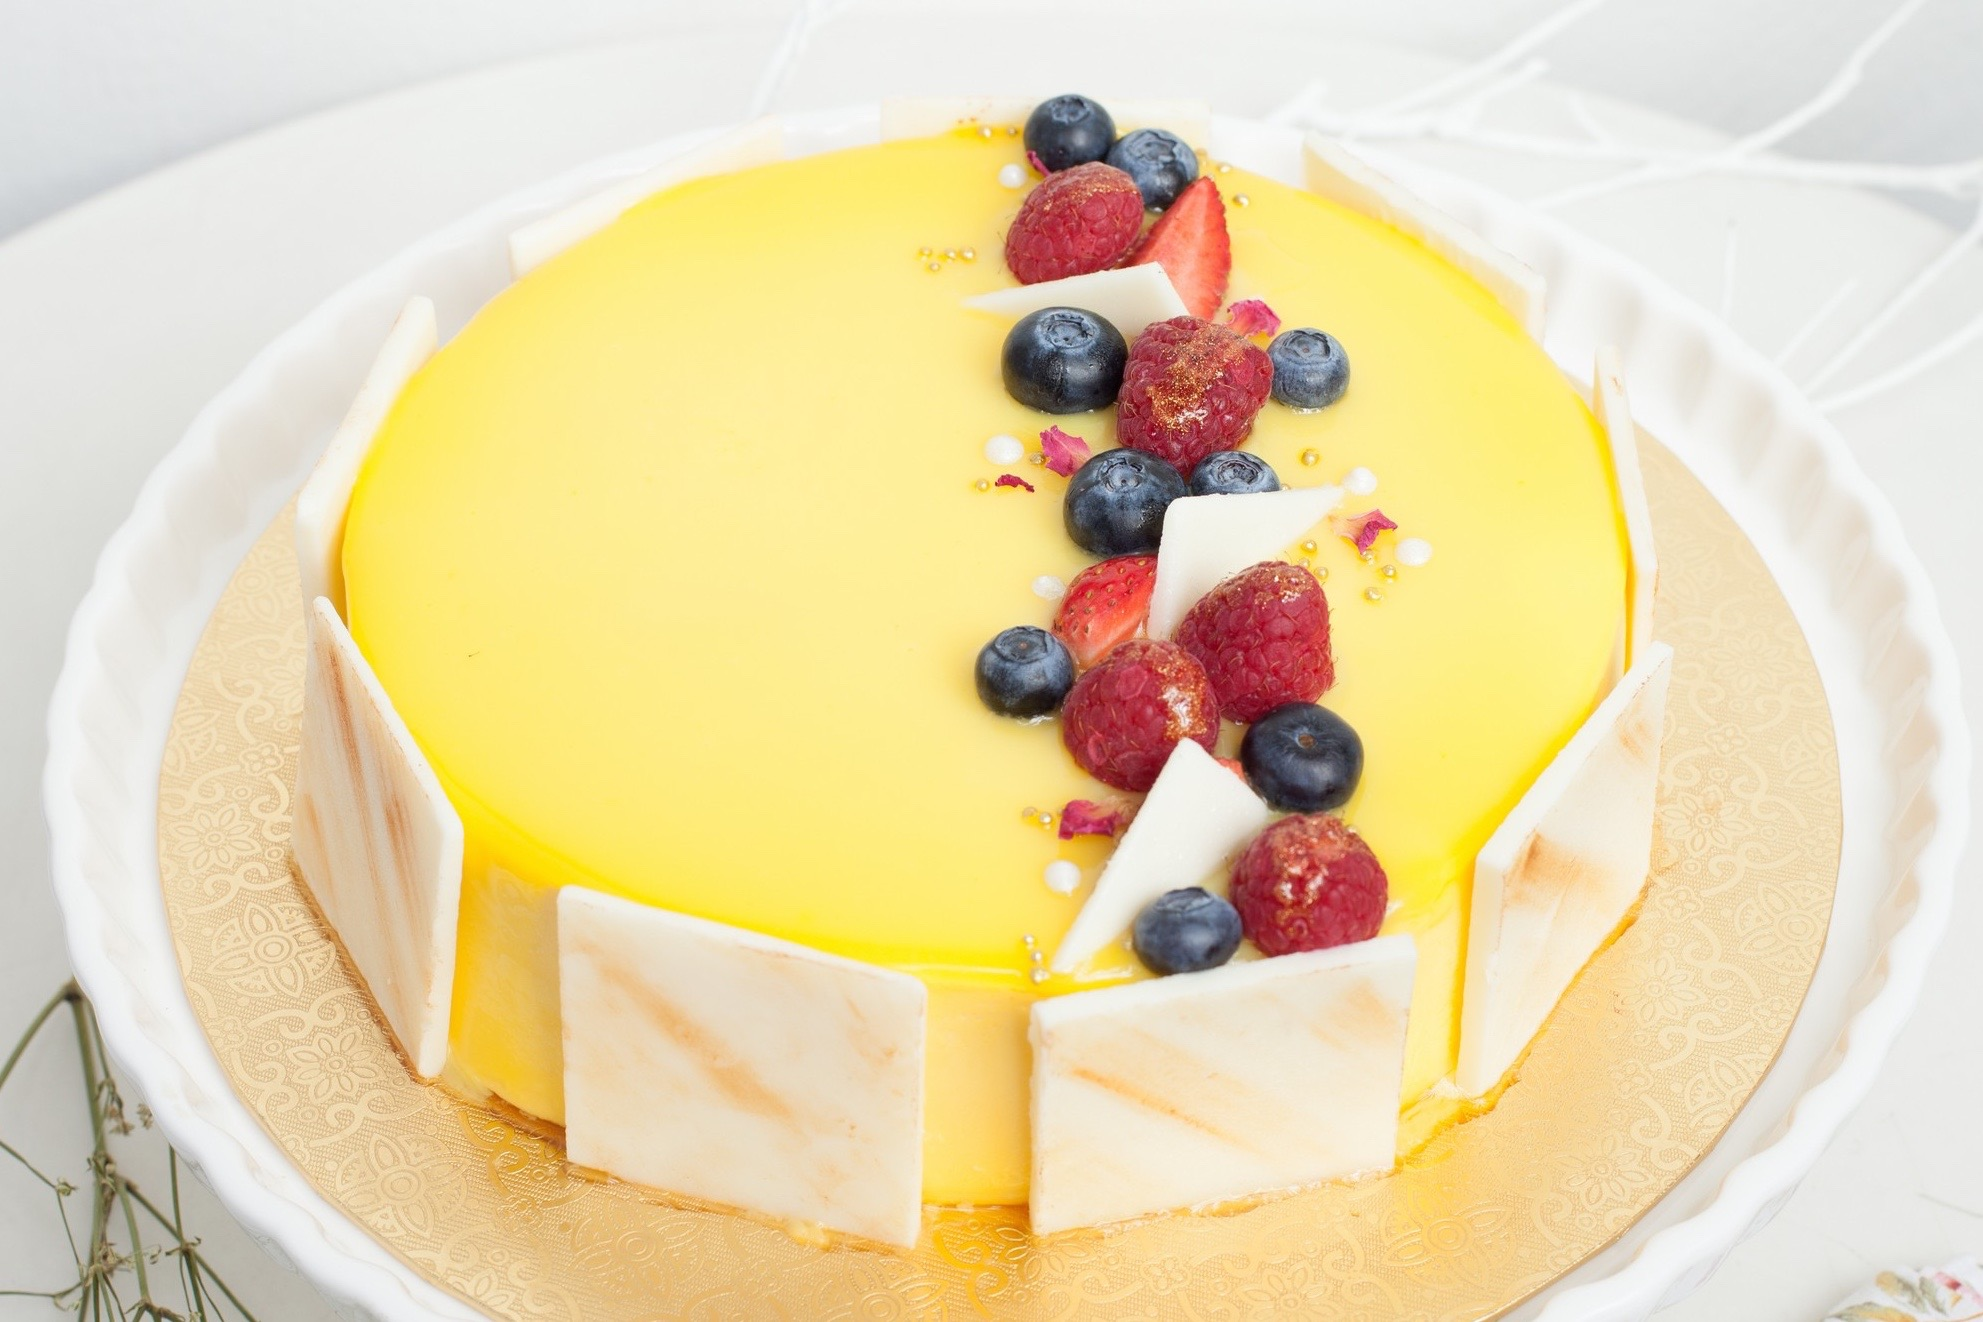 Mango Raspberry Entremet - Ø18 cm - Rp. 500.000,-Ø20 cm - Rp. 750.000,-Mango mousse with a center of raspberry jelly and almond dacquoise on top of a vanilla pâte sablée base. Garnished with fresh berries, dried rose petals and white chocolate decorations.